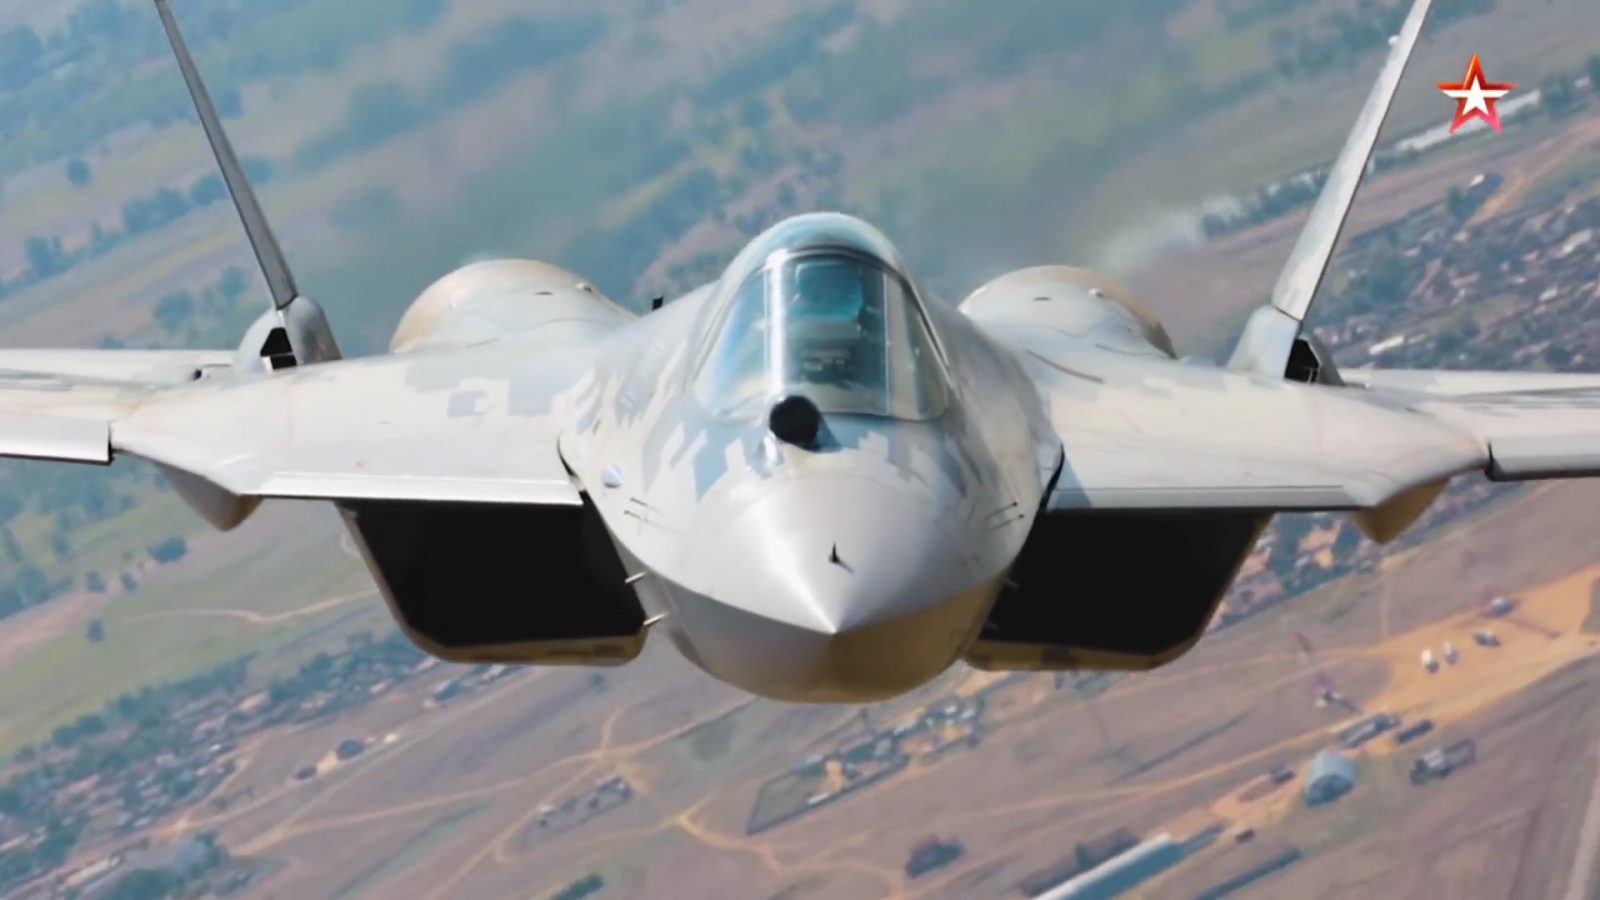 New Video of Russia's Sukhoi Su-57 Doing A Low-Level Photo Shoot